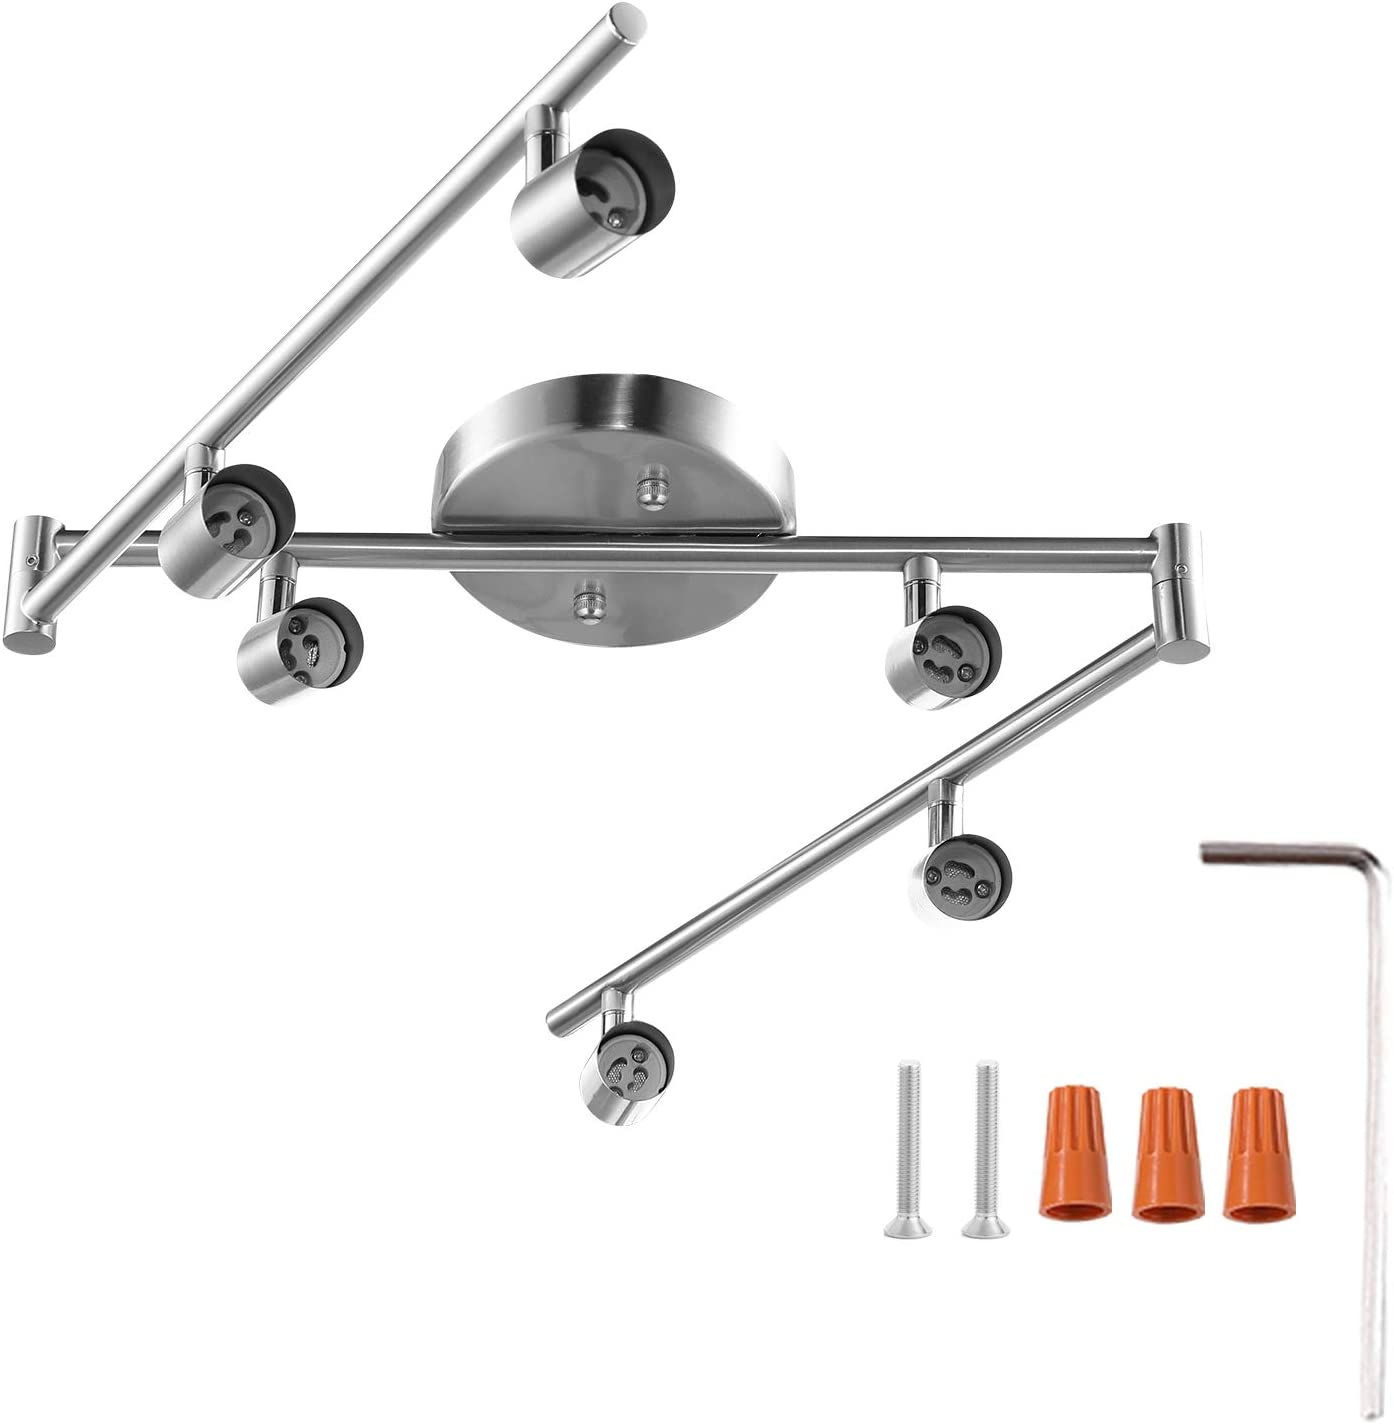 6-Light Adjustable Dimmable Track Lighting Kit by AIBOO,Flexible Foldable Arms,Satin Nickel Kitchen,Hallyway Bed Room Lighting Fixture, GU10 Base Bulbs not Included